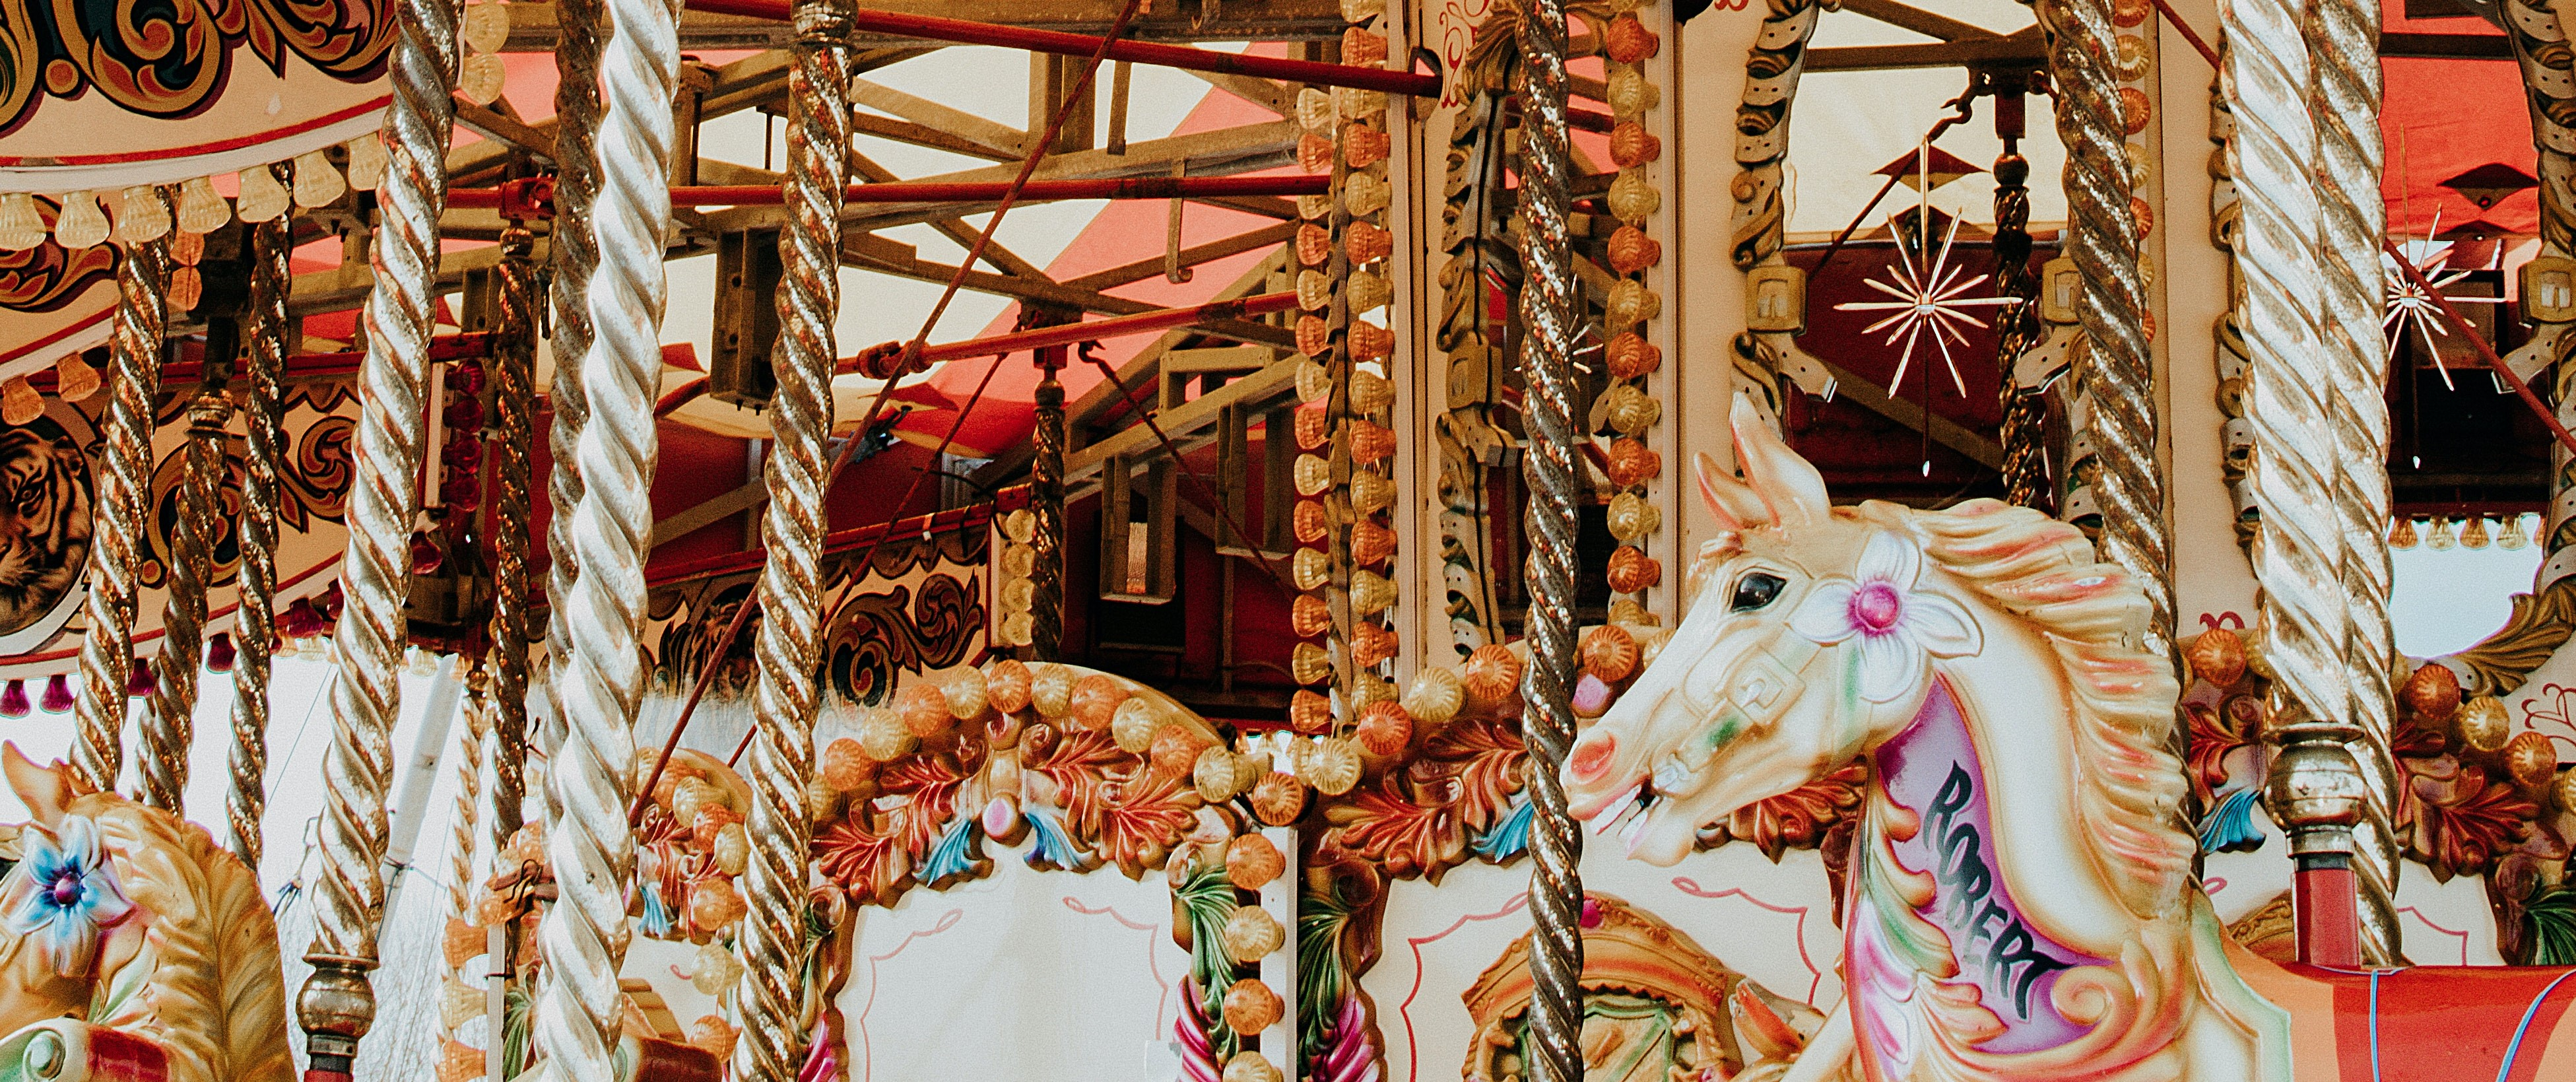 colorful-carousel-edit